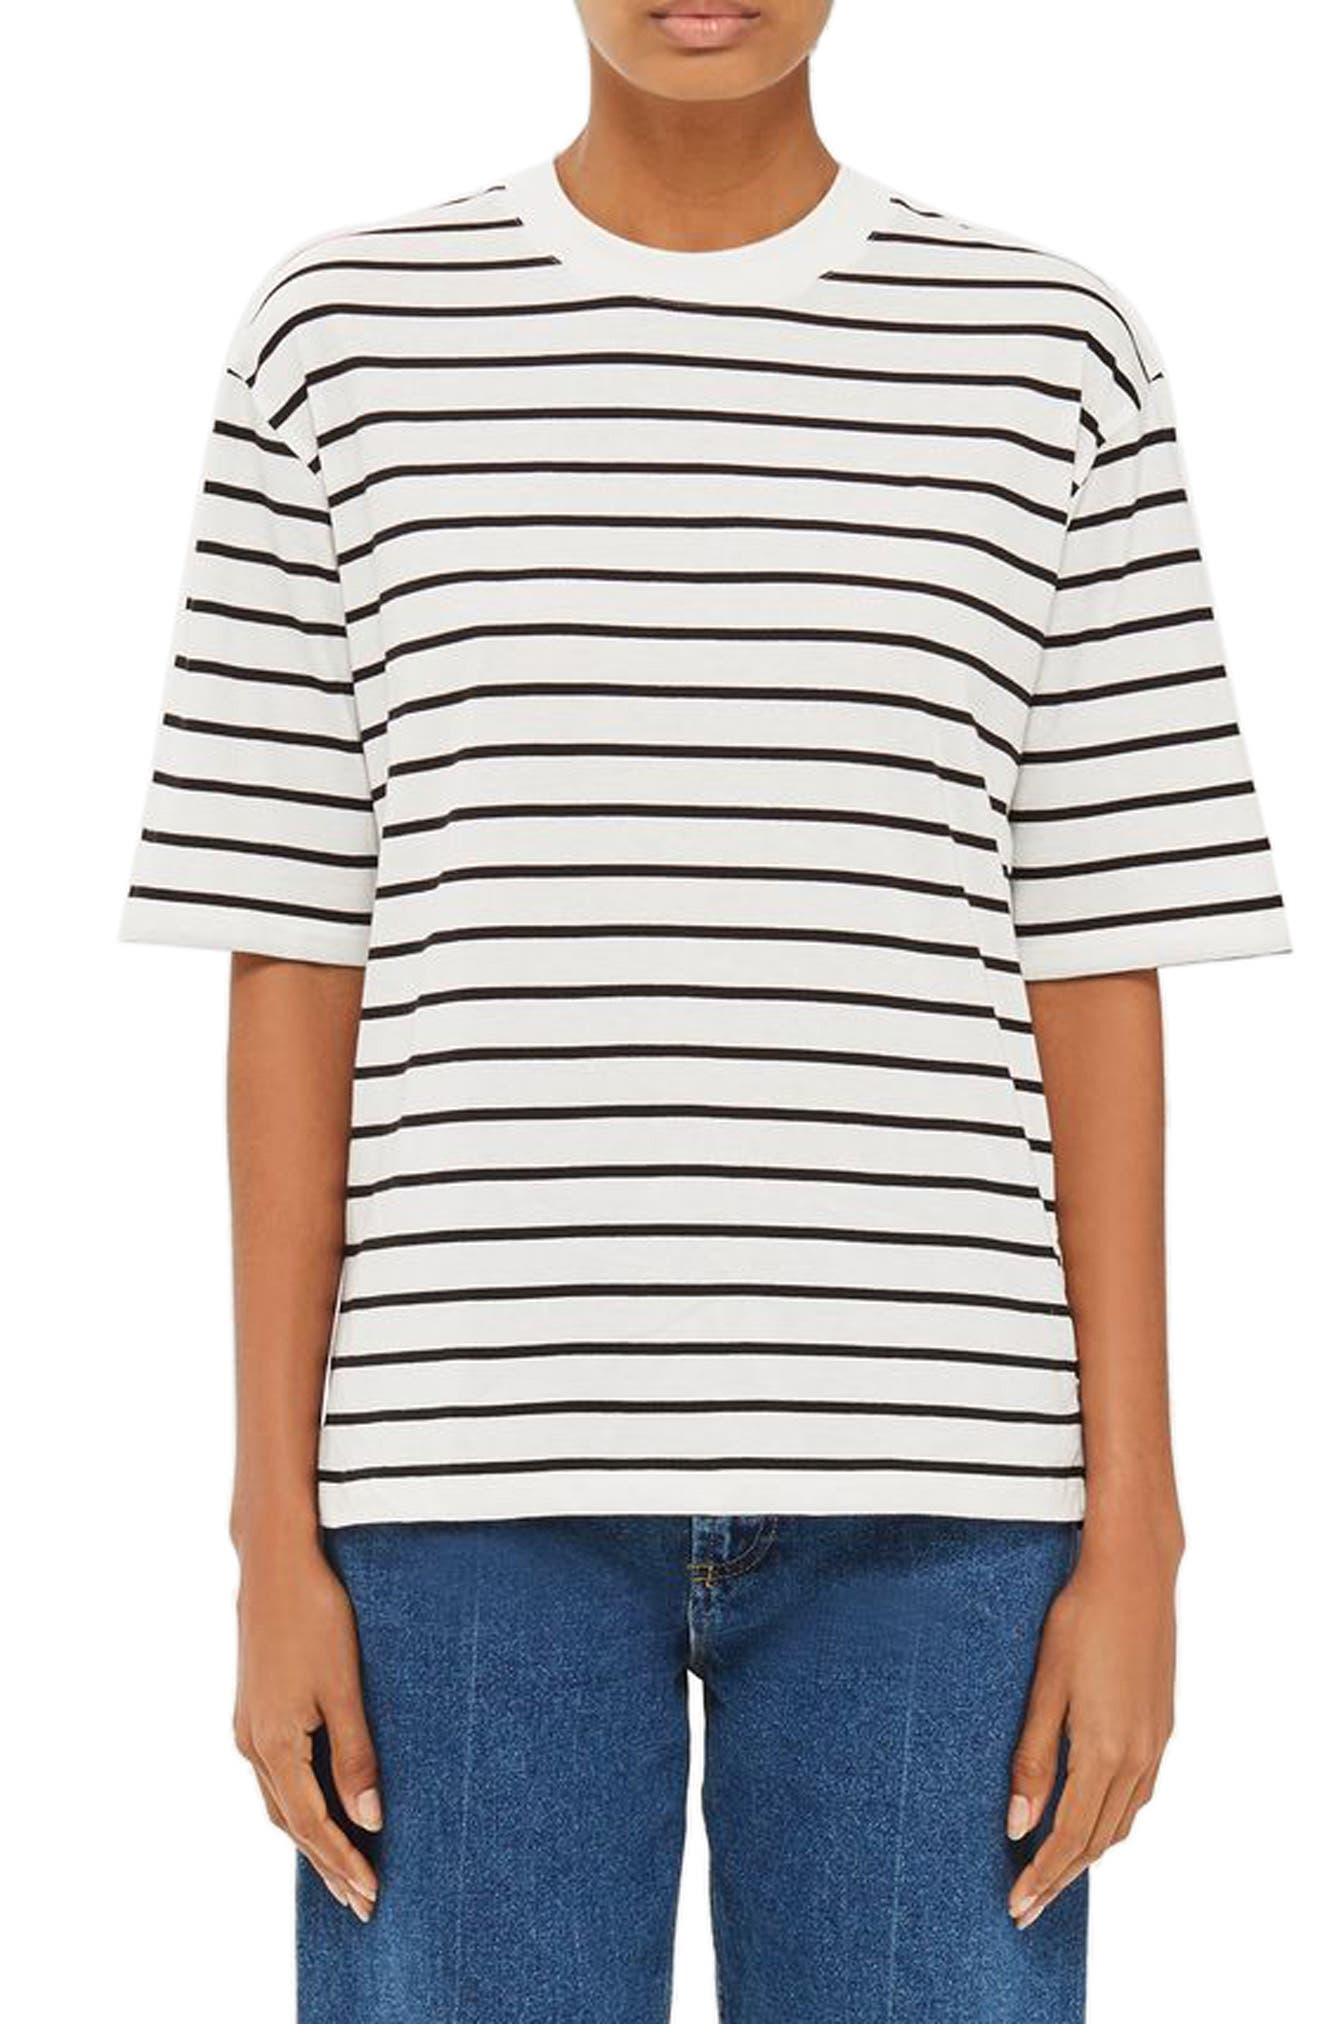 Topshop Boutique Snap Side Stripe Tee